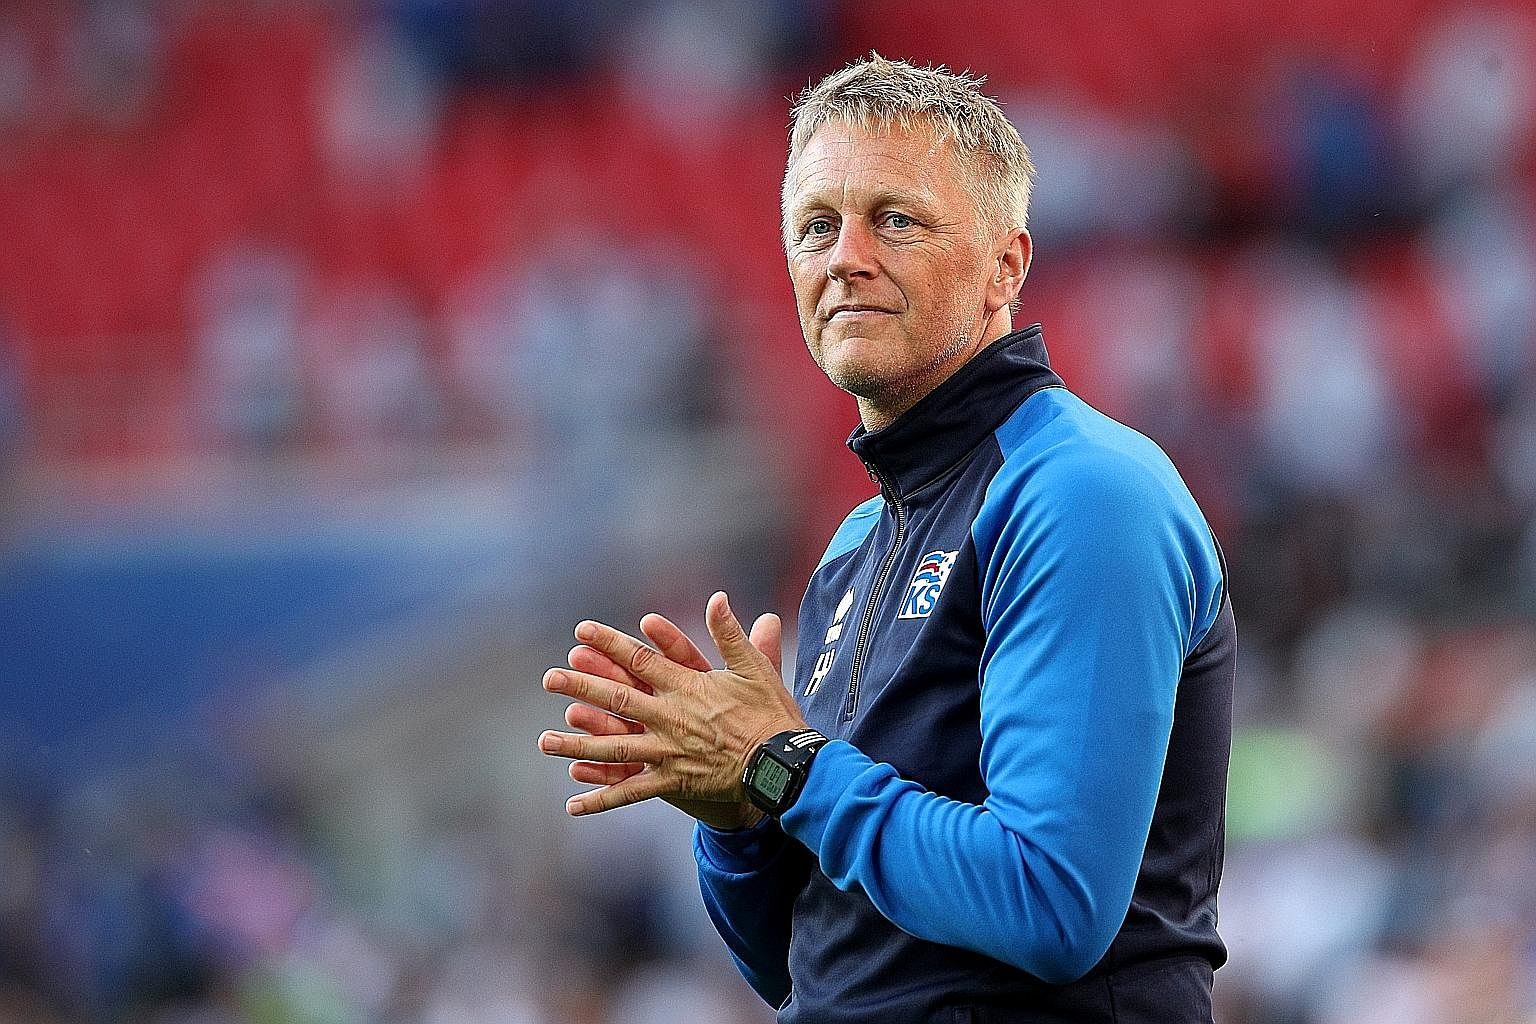 Iceland's concerted effort to keep Lionel Messi at bay in the 1-1 draw on Saturday. They are making waves under head coach and dentist Heimar Hallgrimsson's guidance.